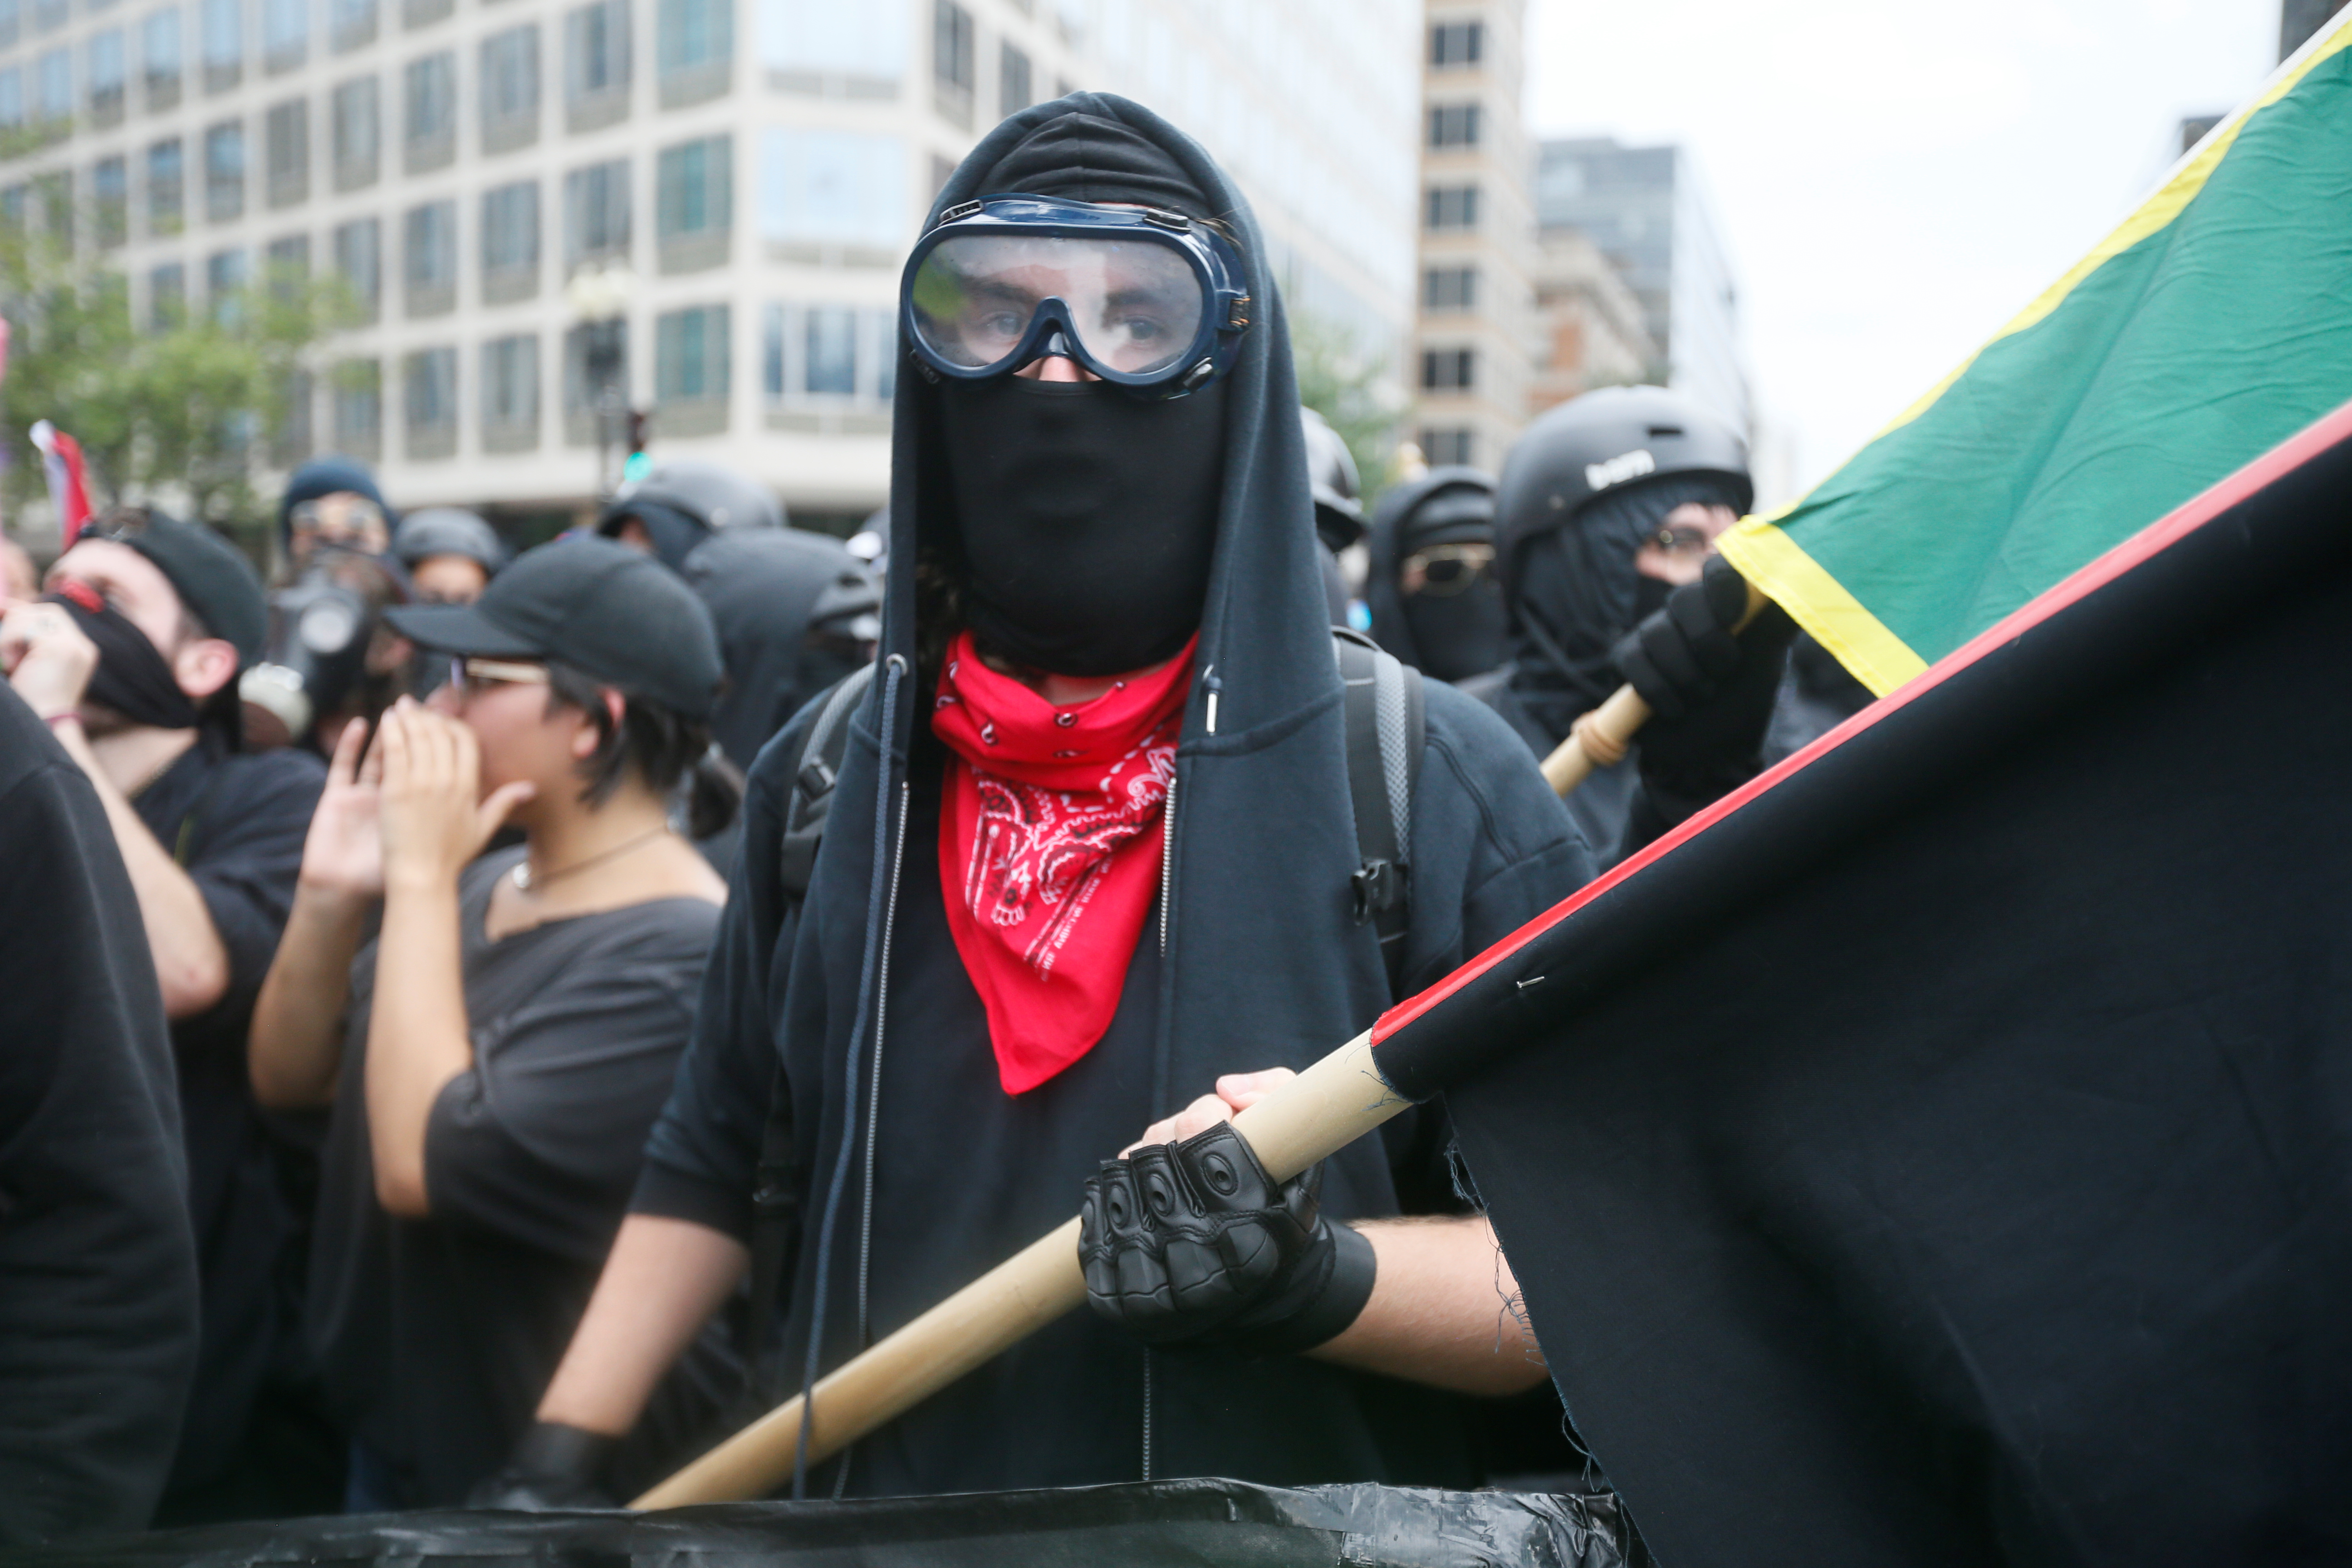 Antifa, opponents of white nationalist, Jason Kessler's group, march during a rally, marking the one year anniversary of the 2017 Charlottesville 'Unite the Right' protests in Washington, U.S., August 12, 2018. REUTERS/Jim Bourg - RC1C47688FA0